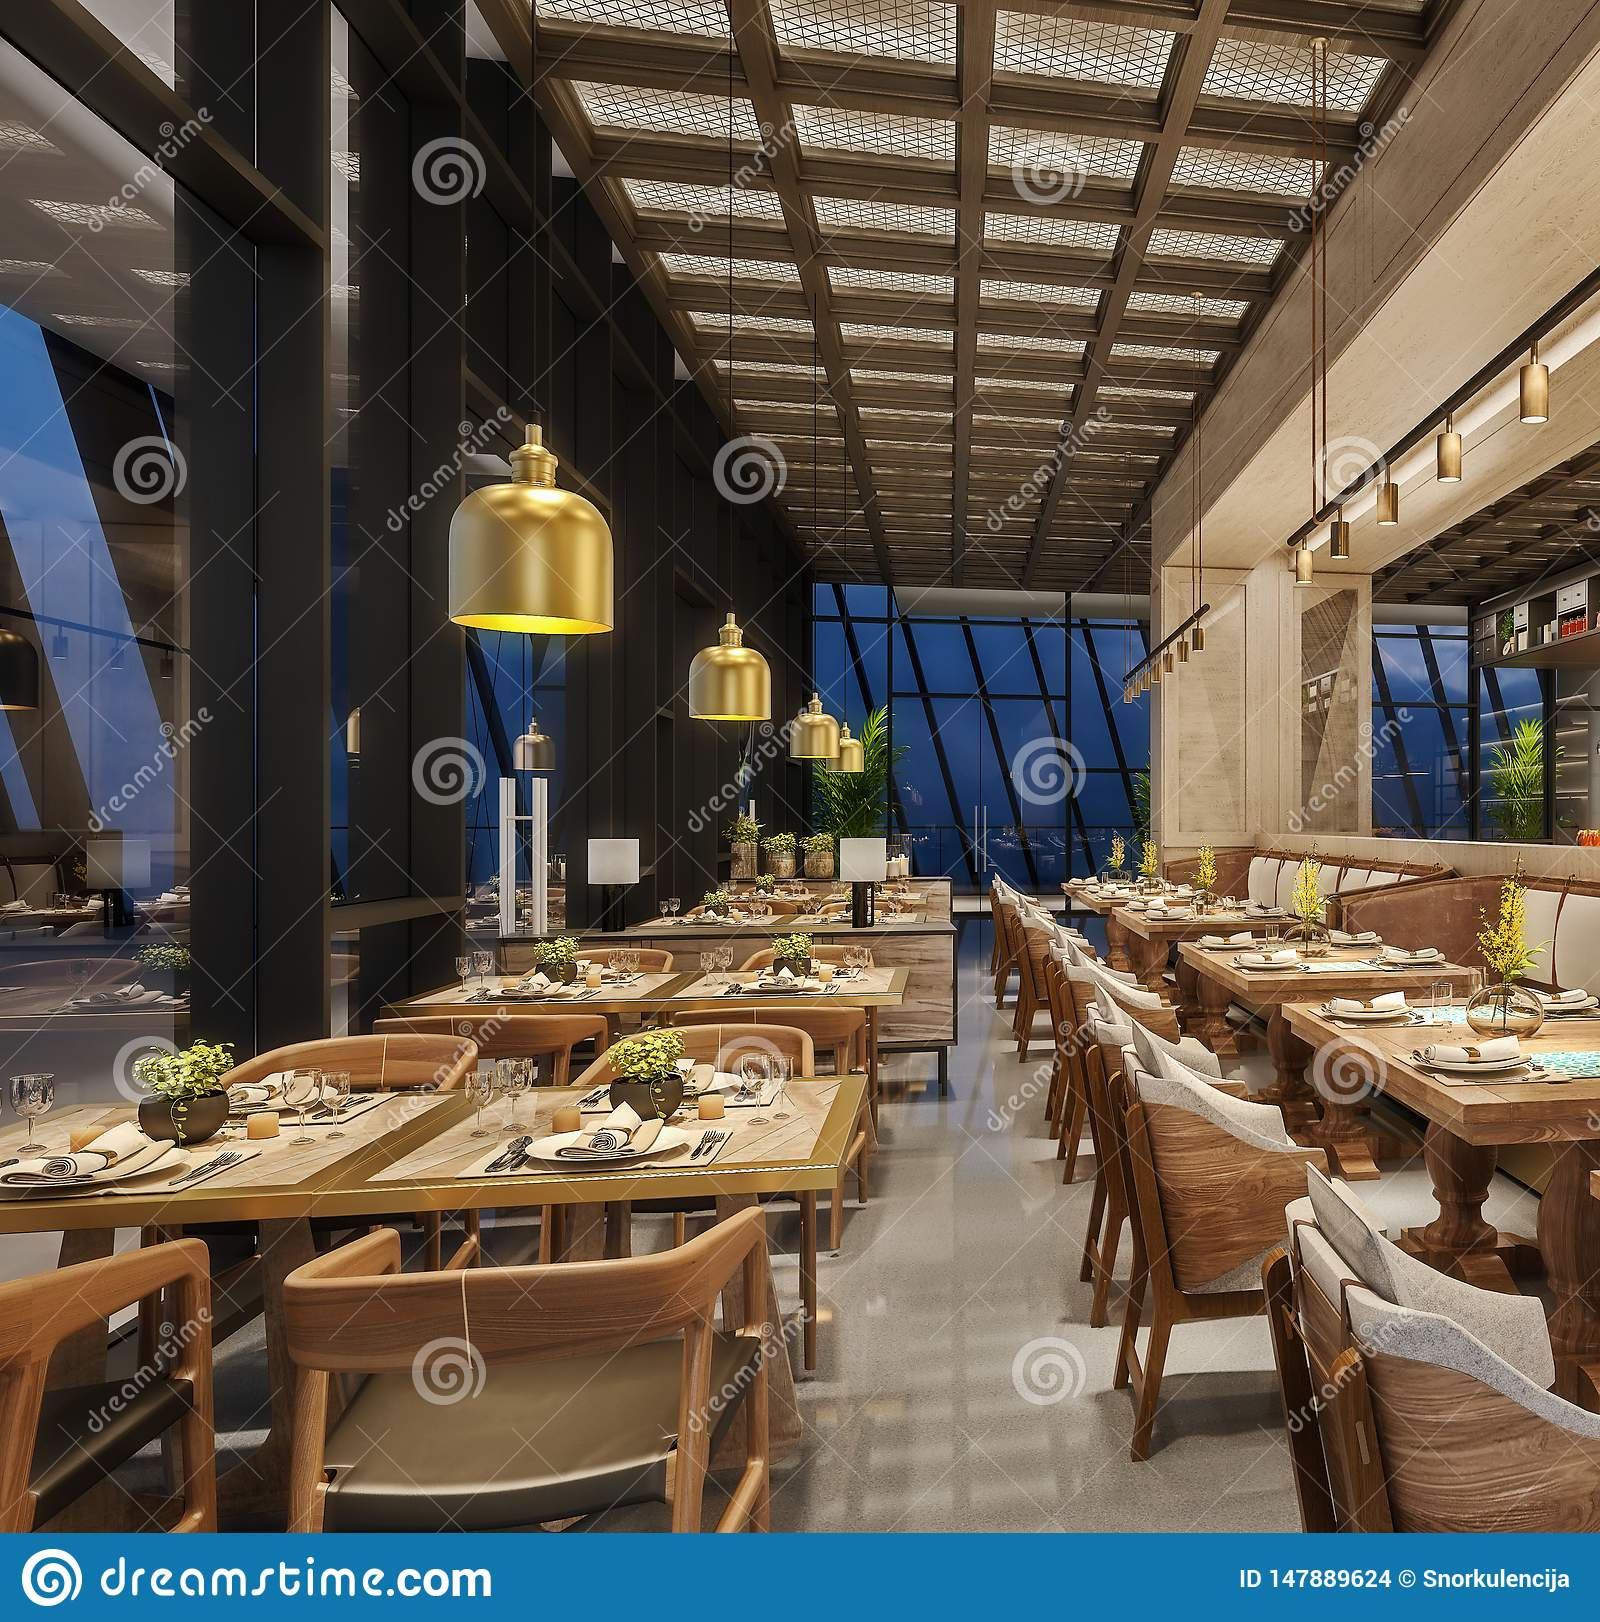 Modern Interior Design Of Restaurant Lounge Oriental Arabic Style With Wire Mesh Ceiling And Hidden Lights Wood And Bronze Gold Stock Photo Image Of Food Bronze 147889624